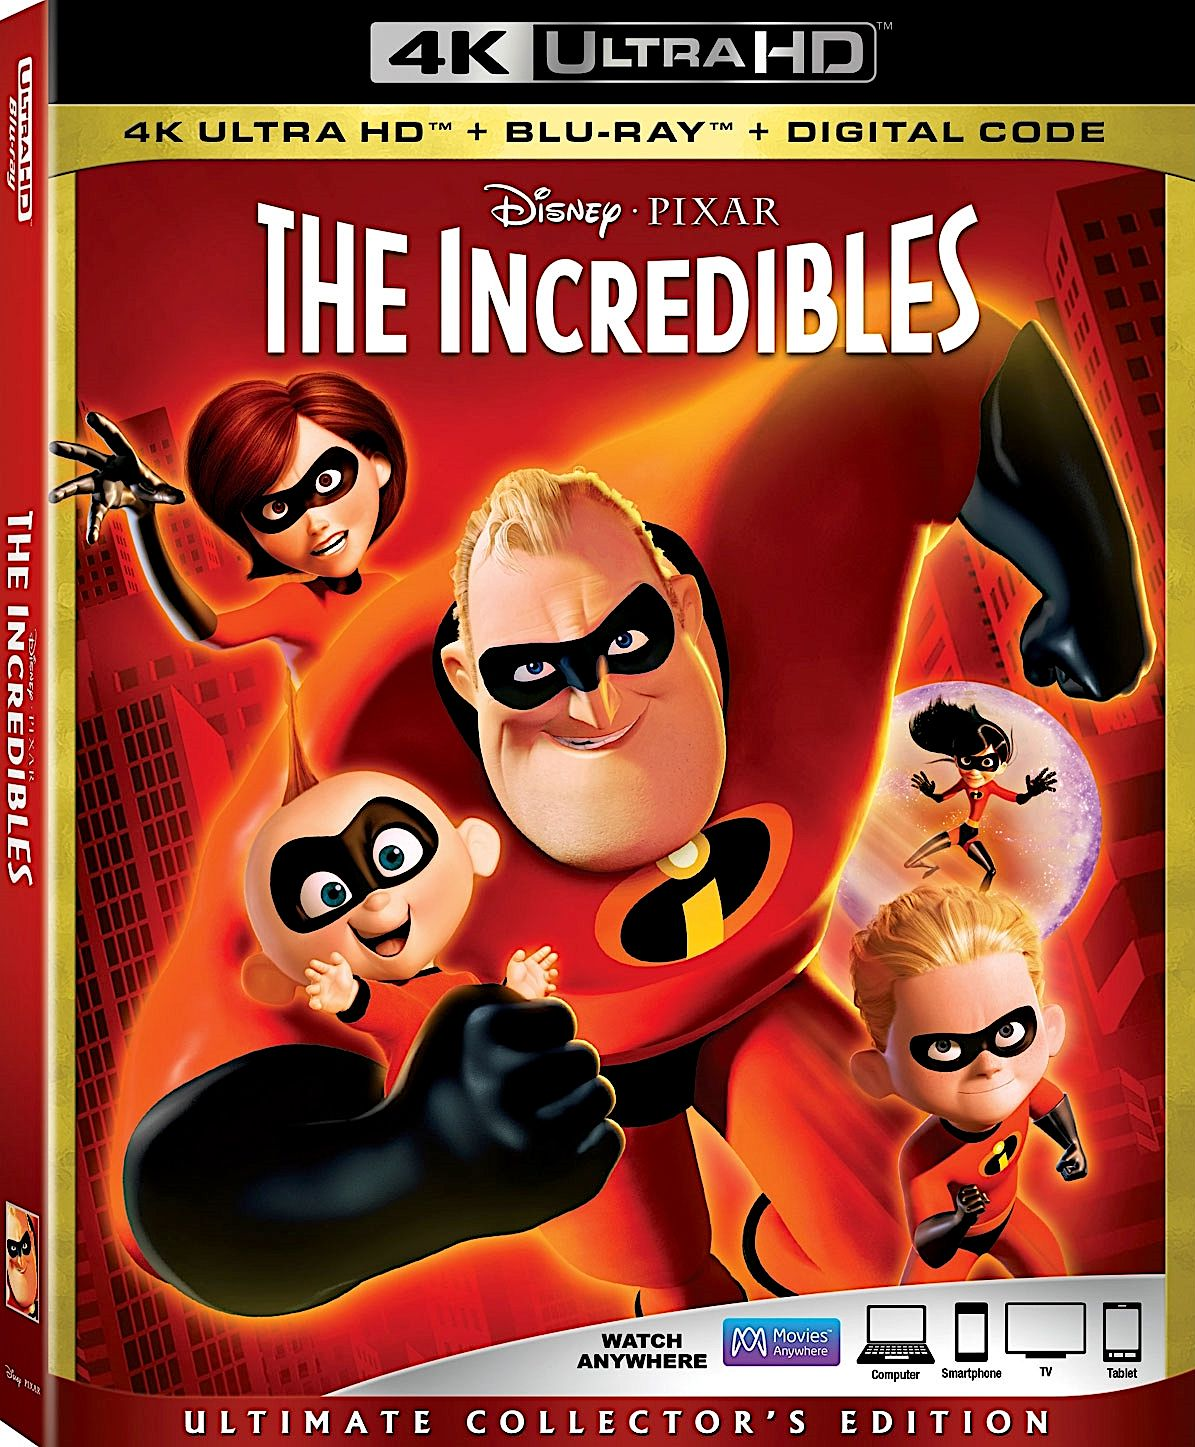 THE INCREDIBLES ULTIMATE COLLECTOR'S EDITION 4K BLURAY